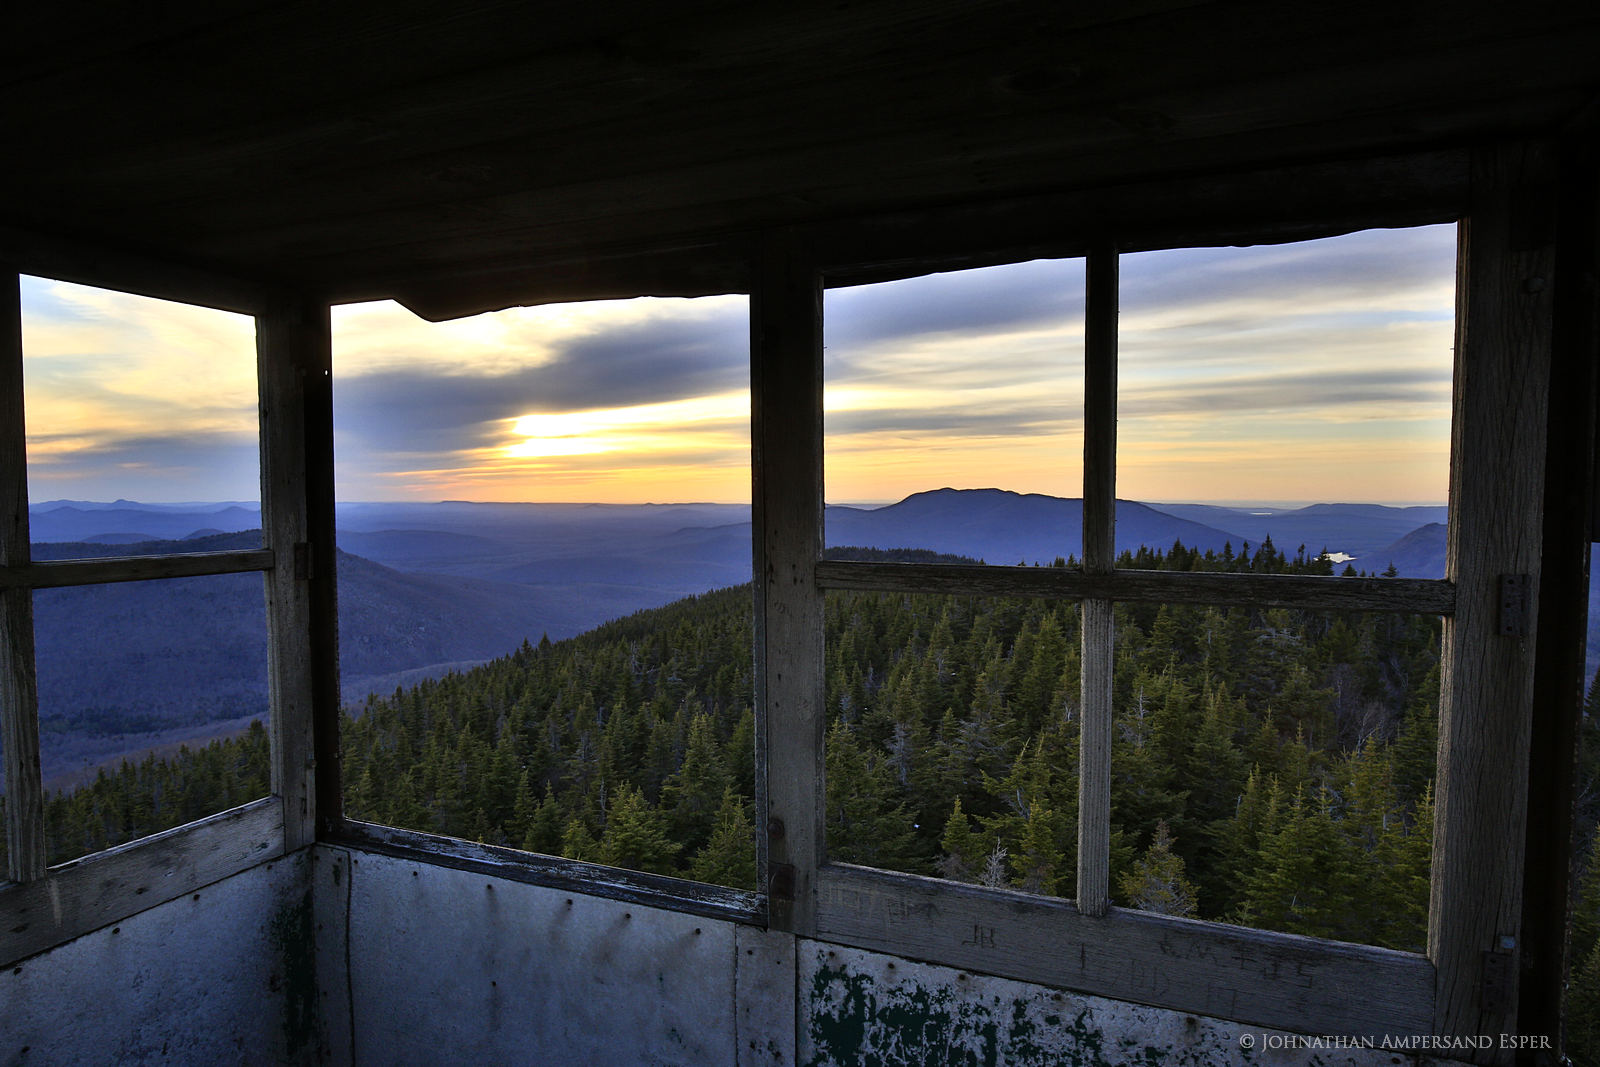 firetower, Loon Lake,Loon Lake Mt,Loon Lake Mt firetower, photo